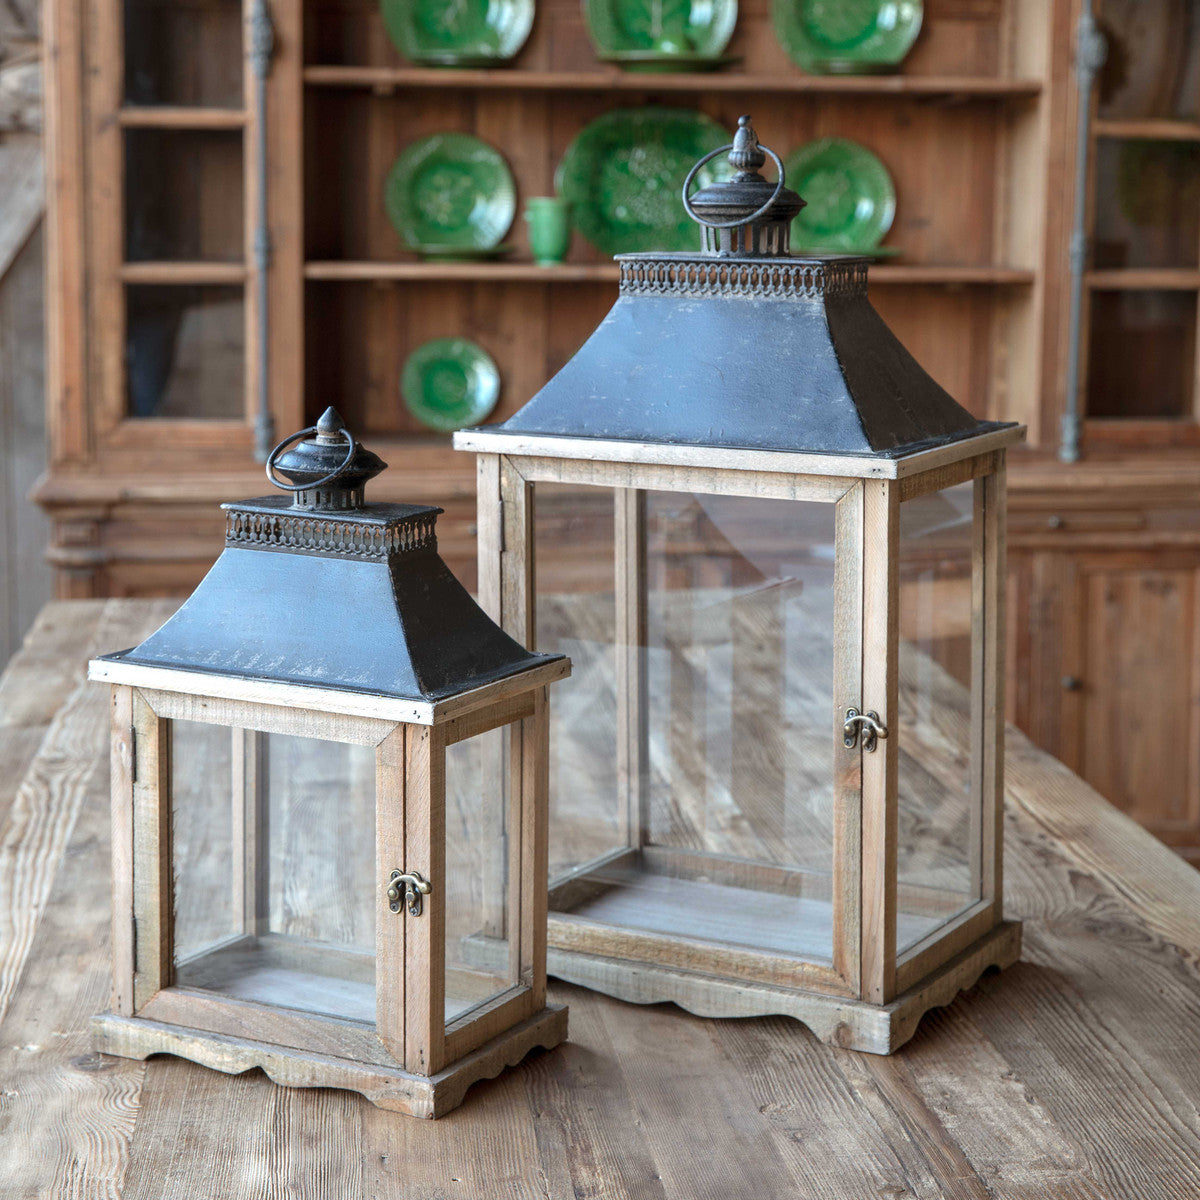 Display Box Lanterns, Set of 2